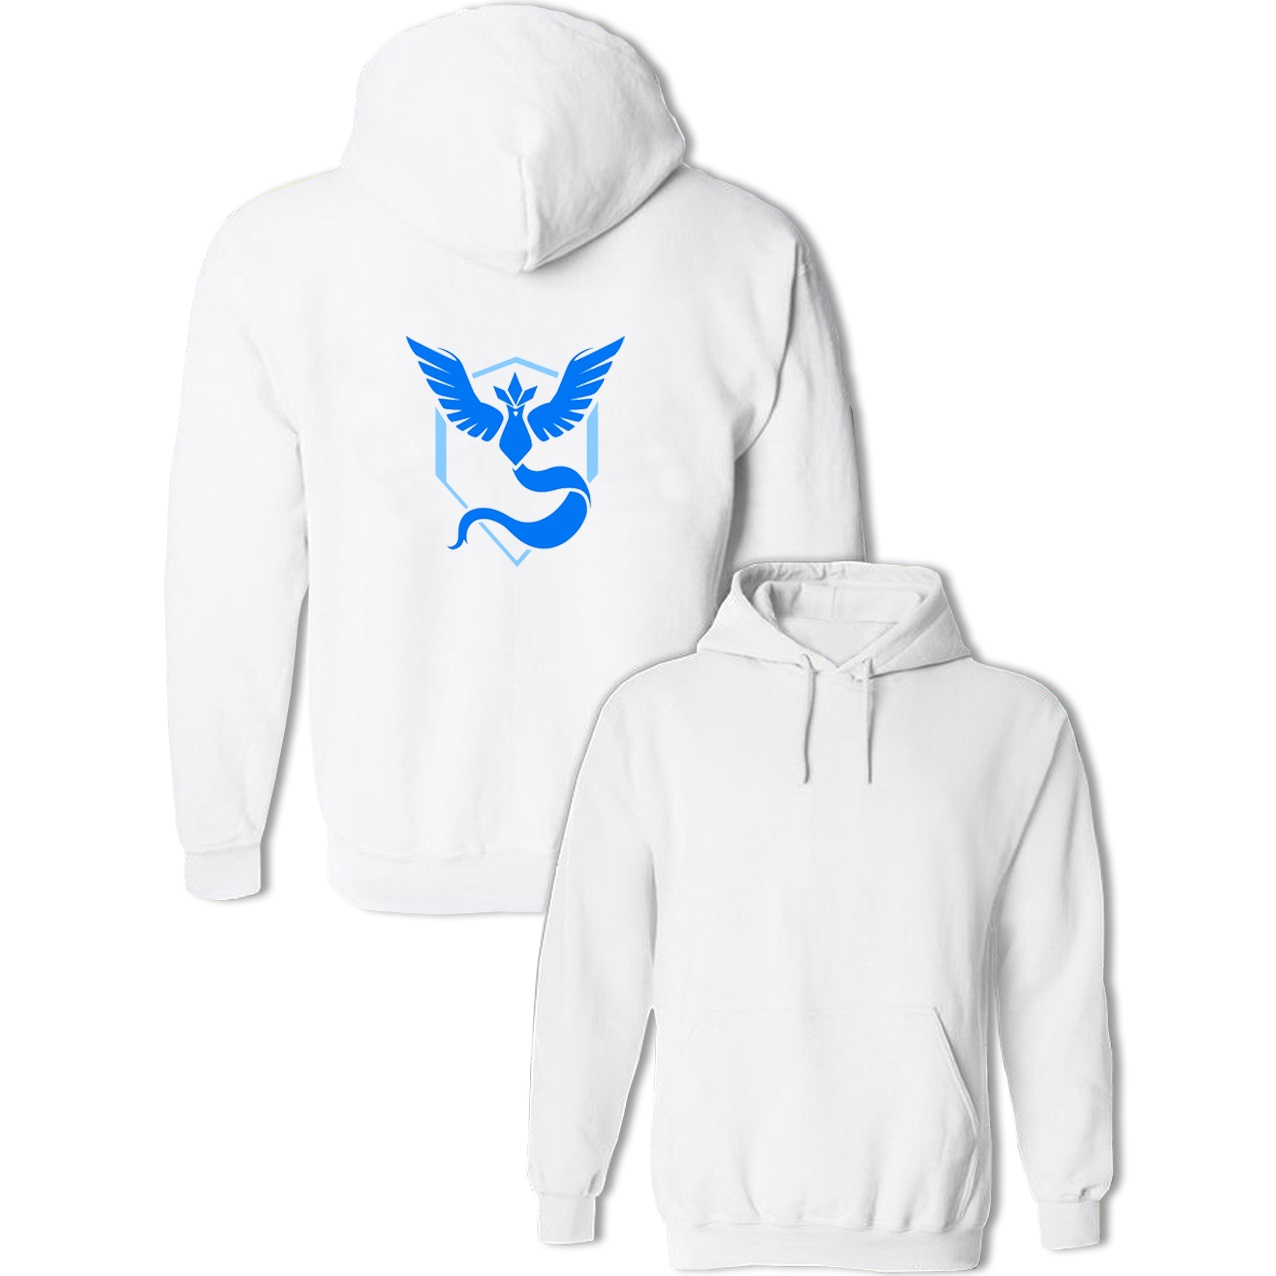 Pokemon Go Game Fans Sweatshirts Womens Mens Hoodies Moltres Team Red Team Articuno Team Blue Team Coat Anime Pullover Tops